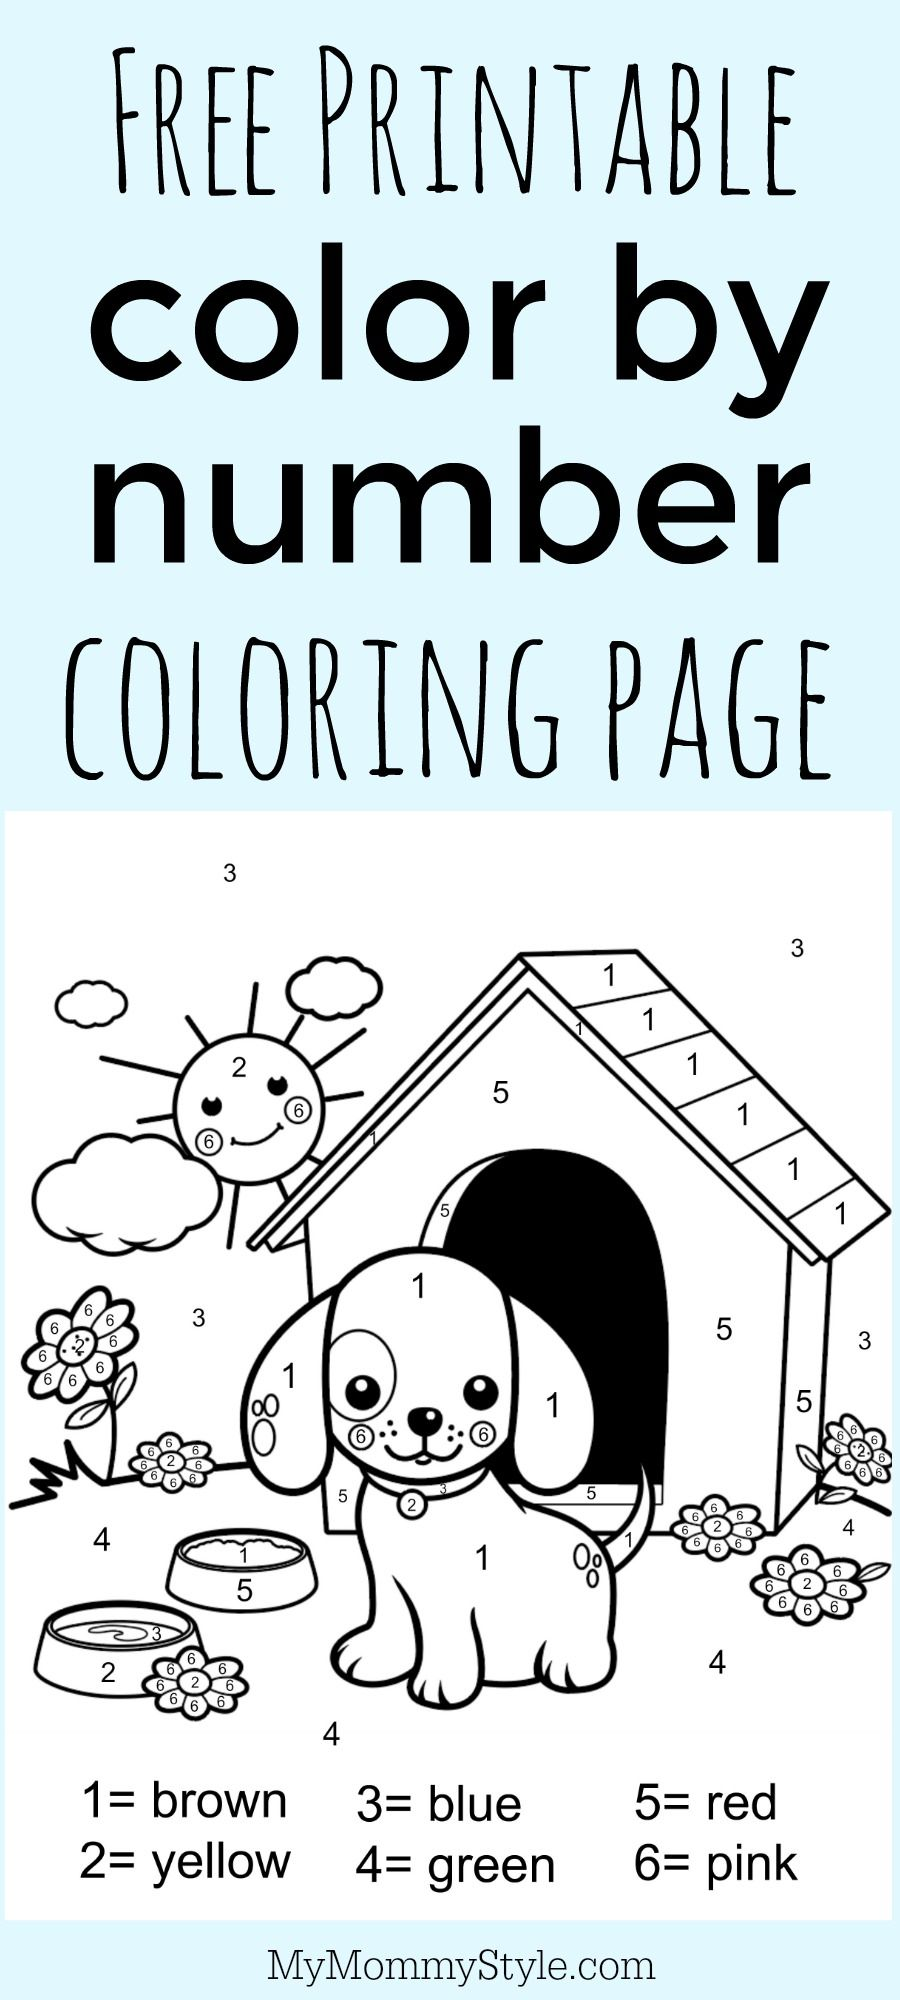 Color by number coloring page free printable Numbers